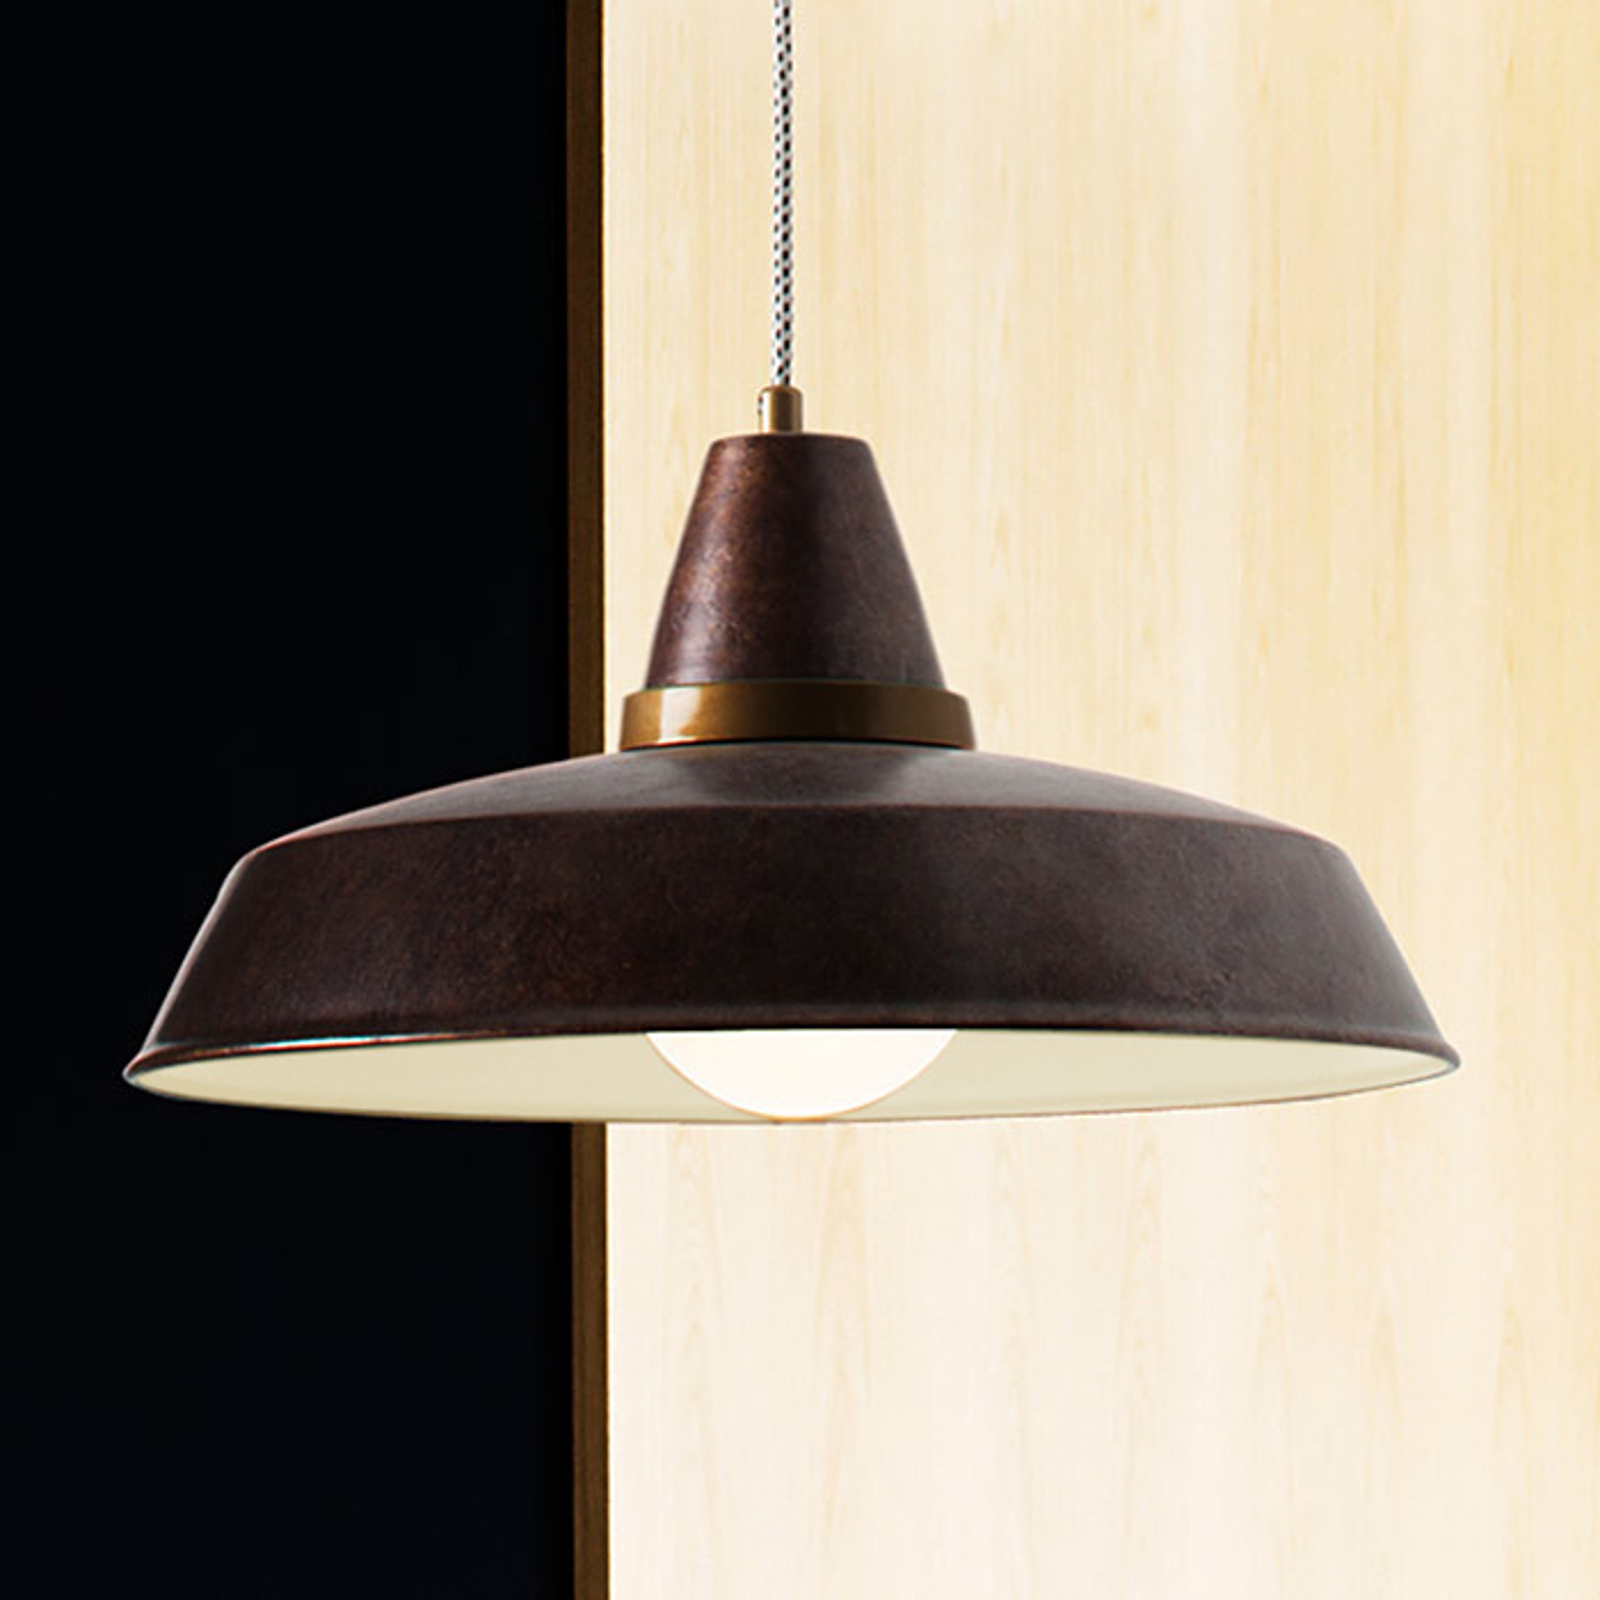 Suspension design Vintage rouille 1 lampe